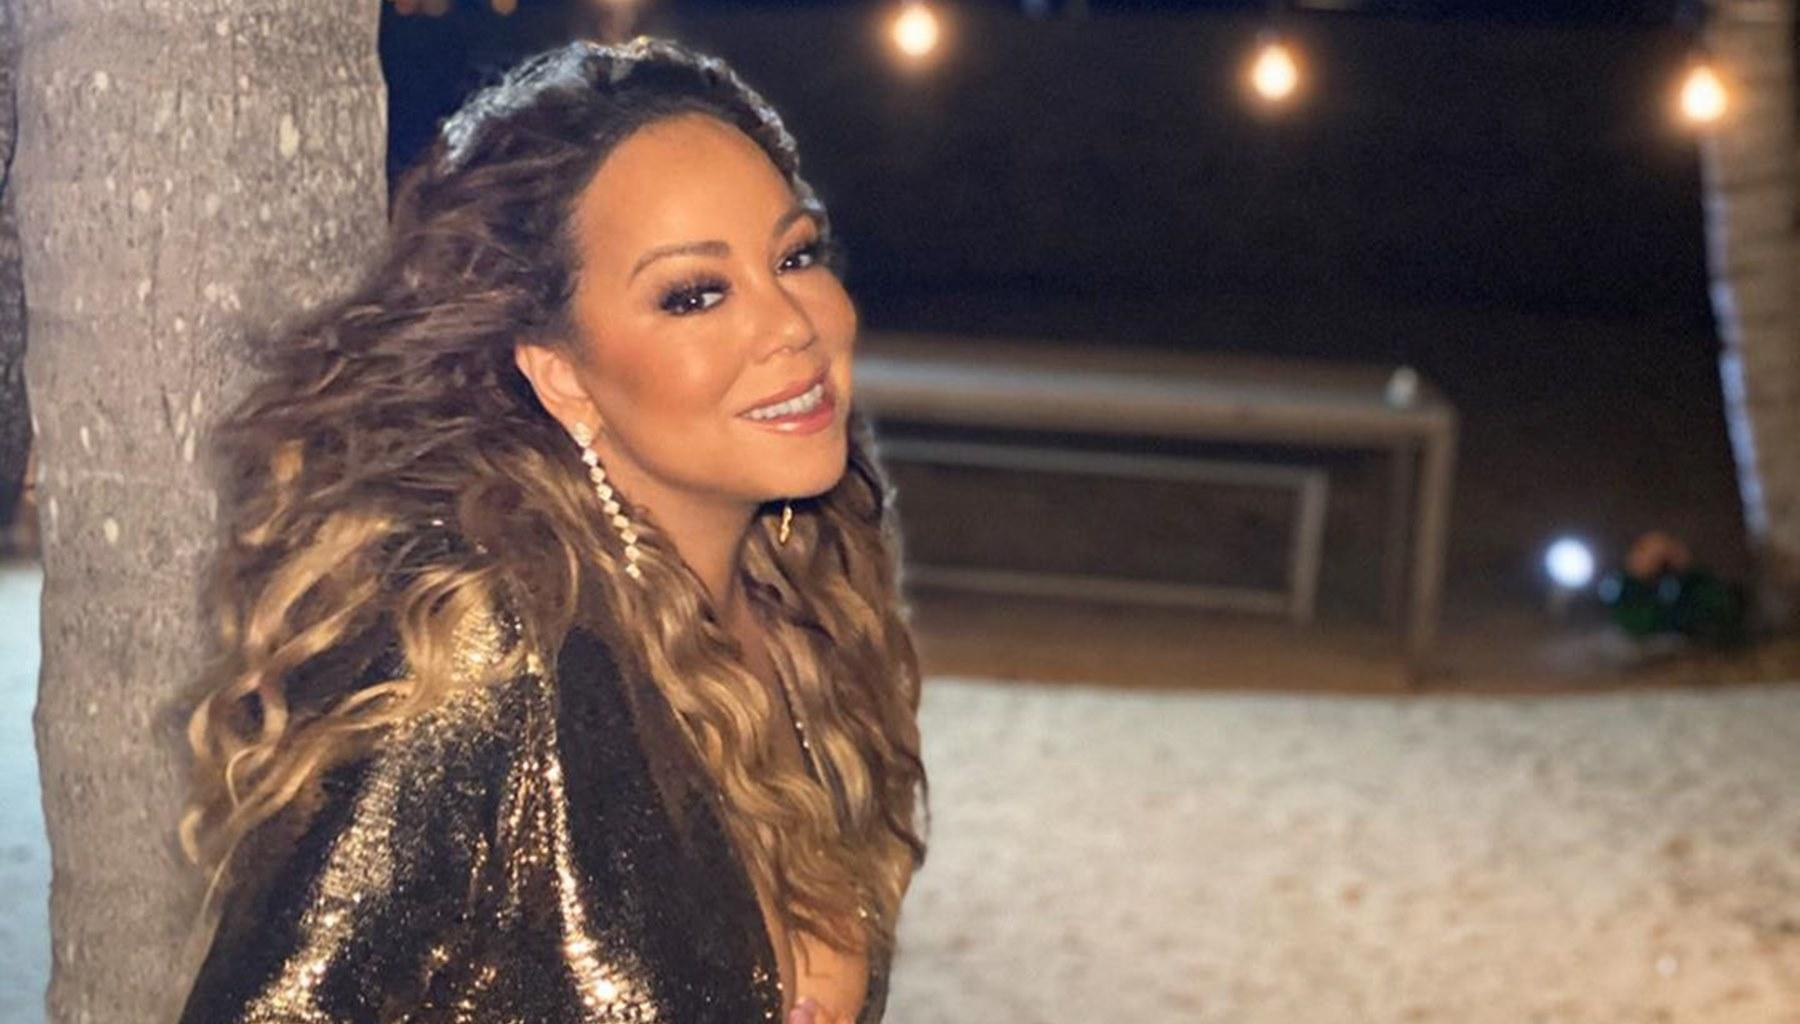 Mariah Carey Has All The Men She Dated In One Photo For Dolly Parton Challenge And Fans Say She Is Throwing Shade At One Of Them